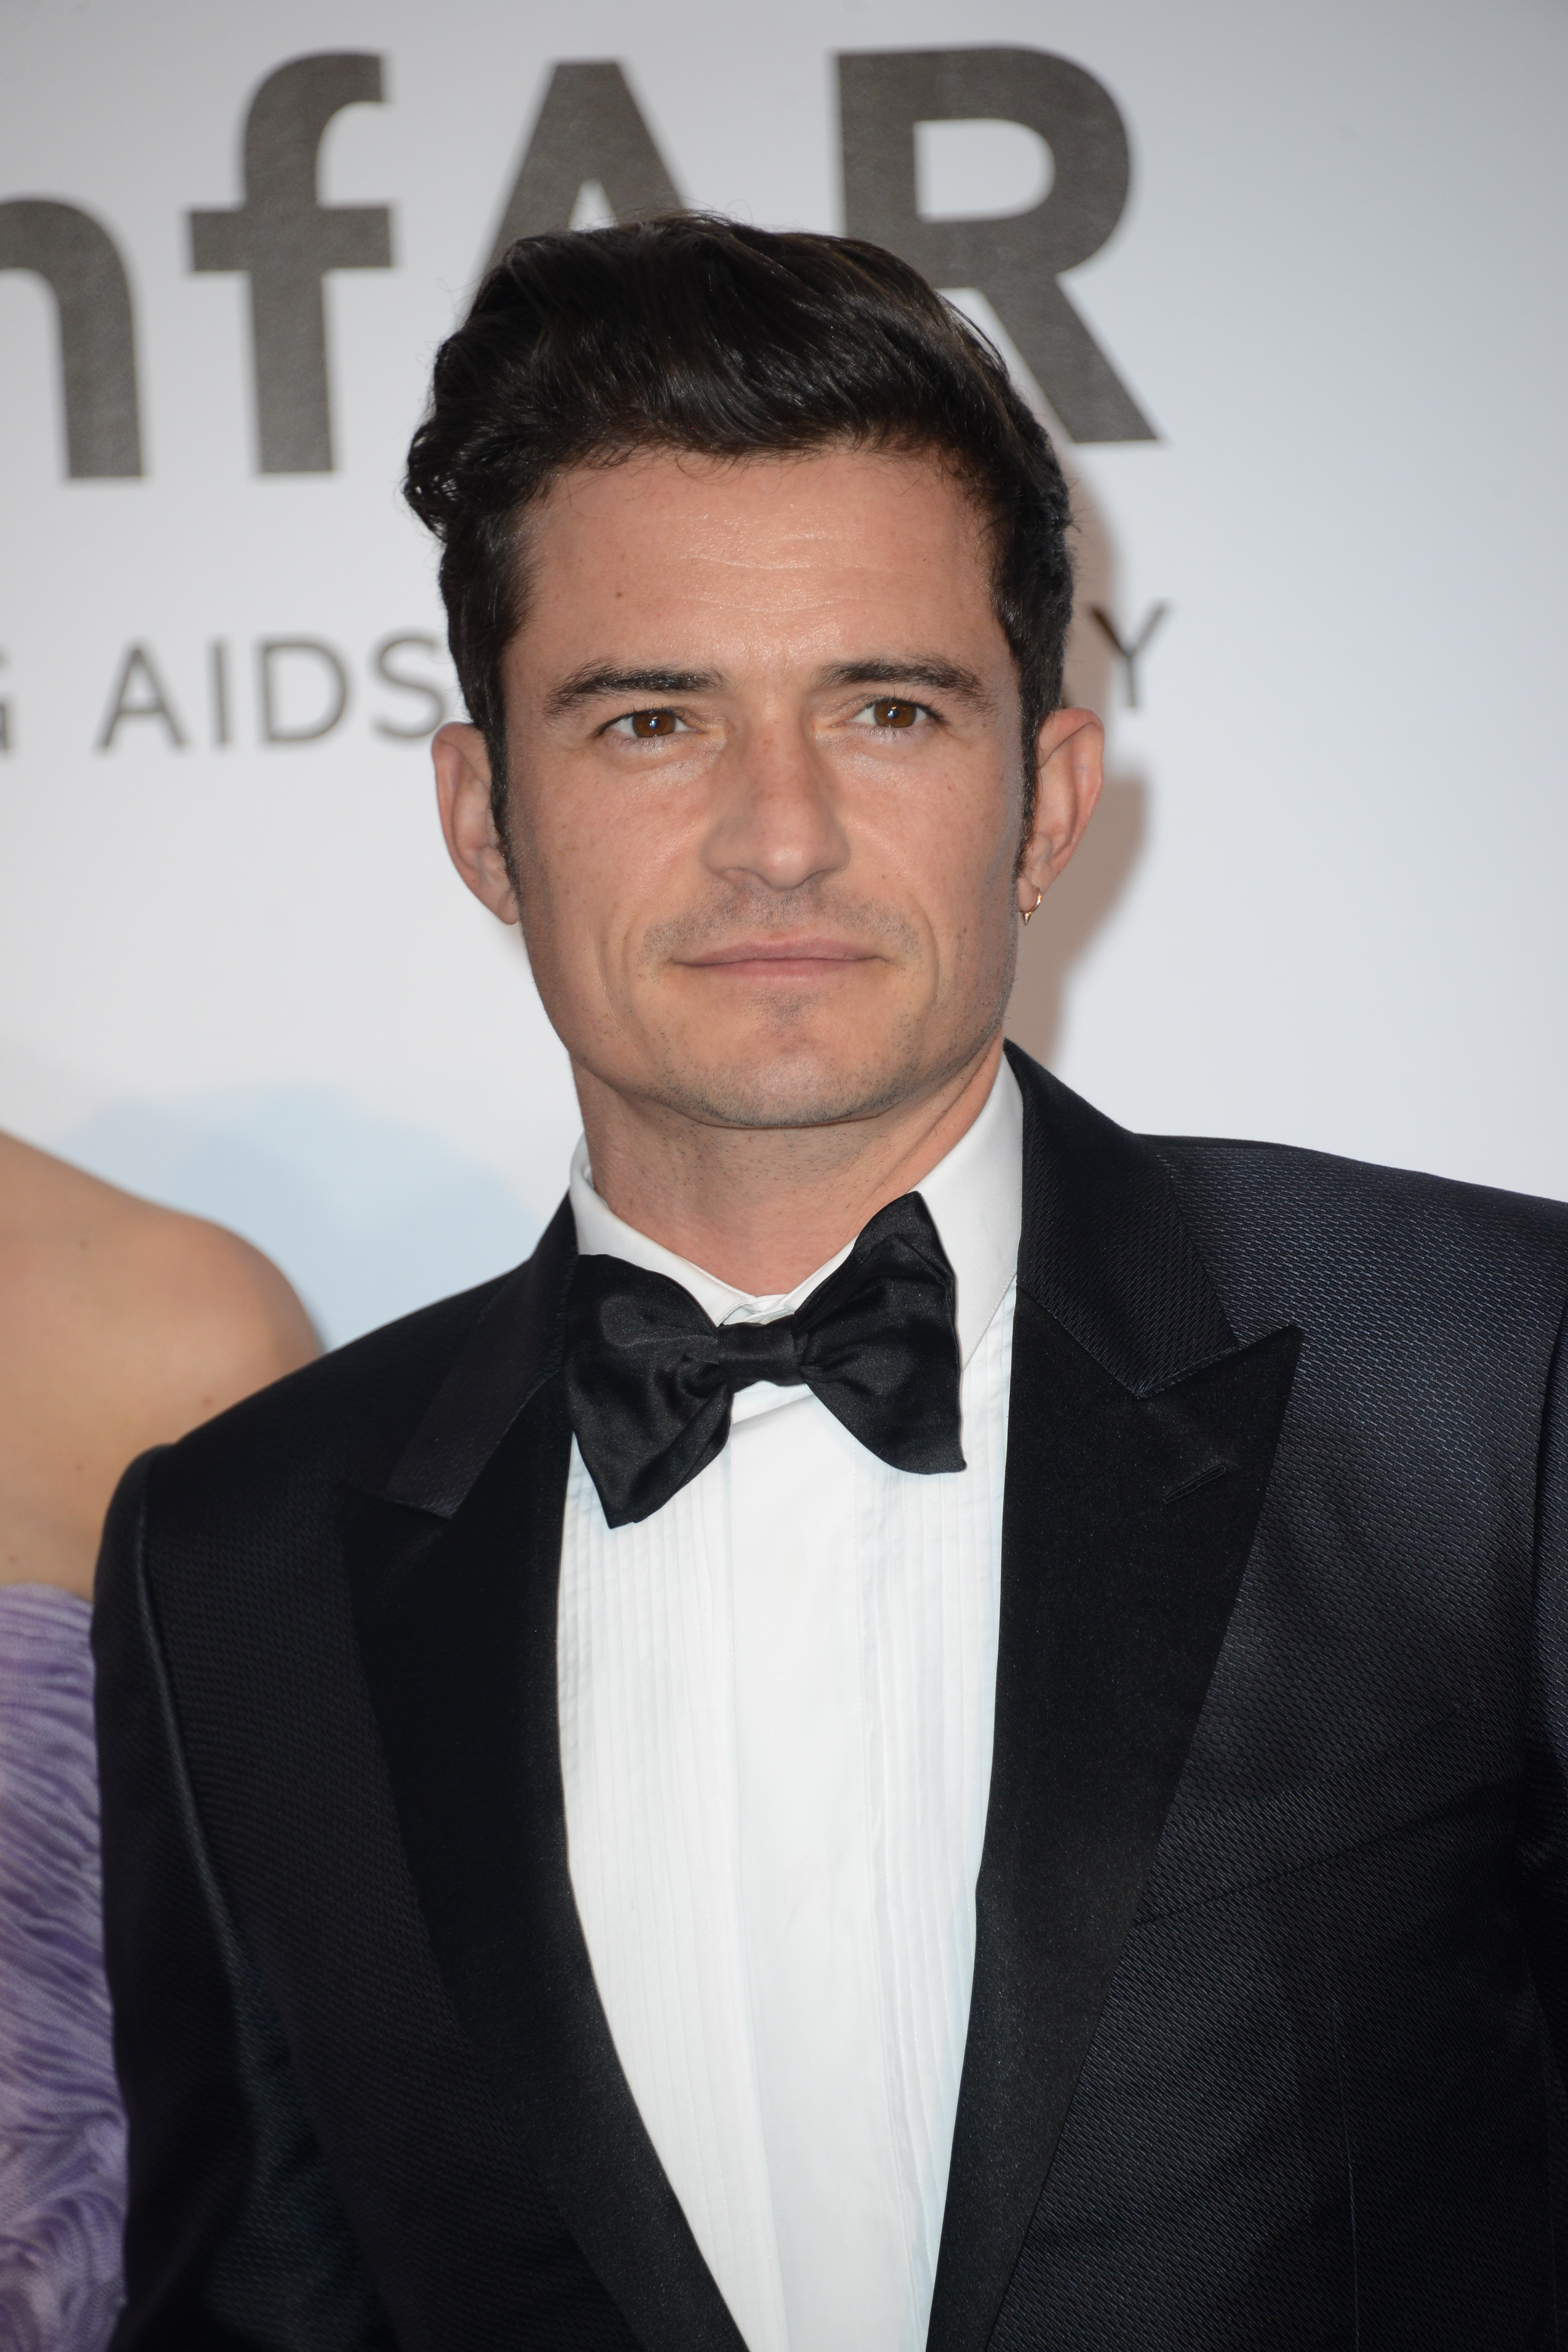 Please Welcome Orlando Bloom to the World of Instagram